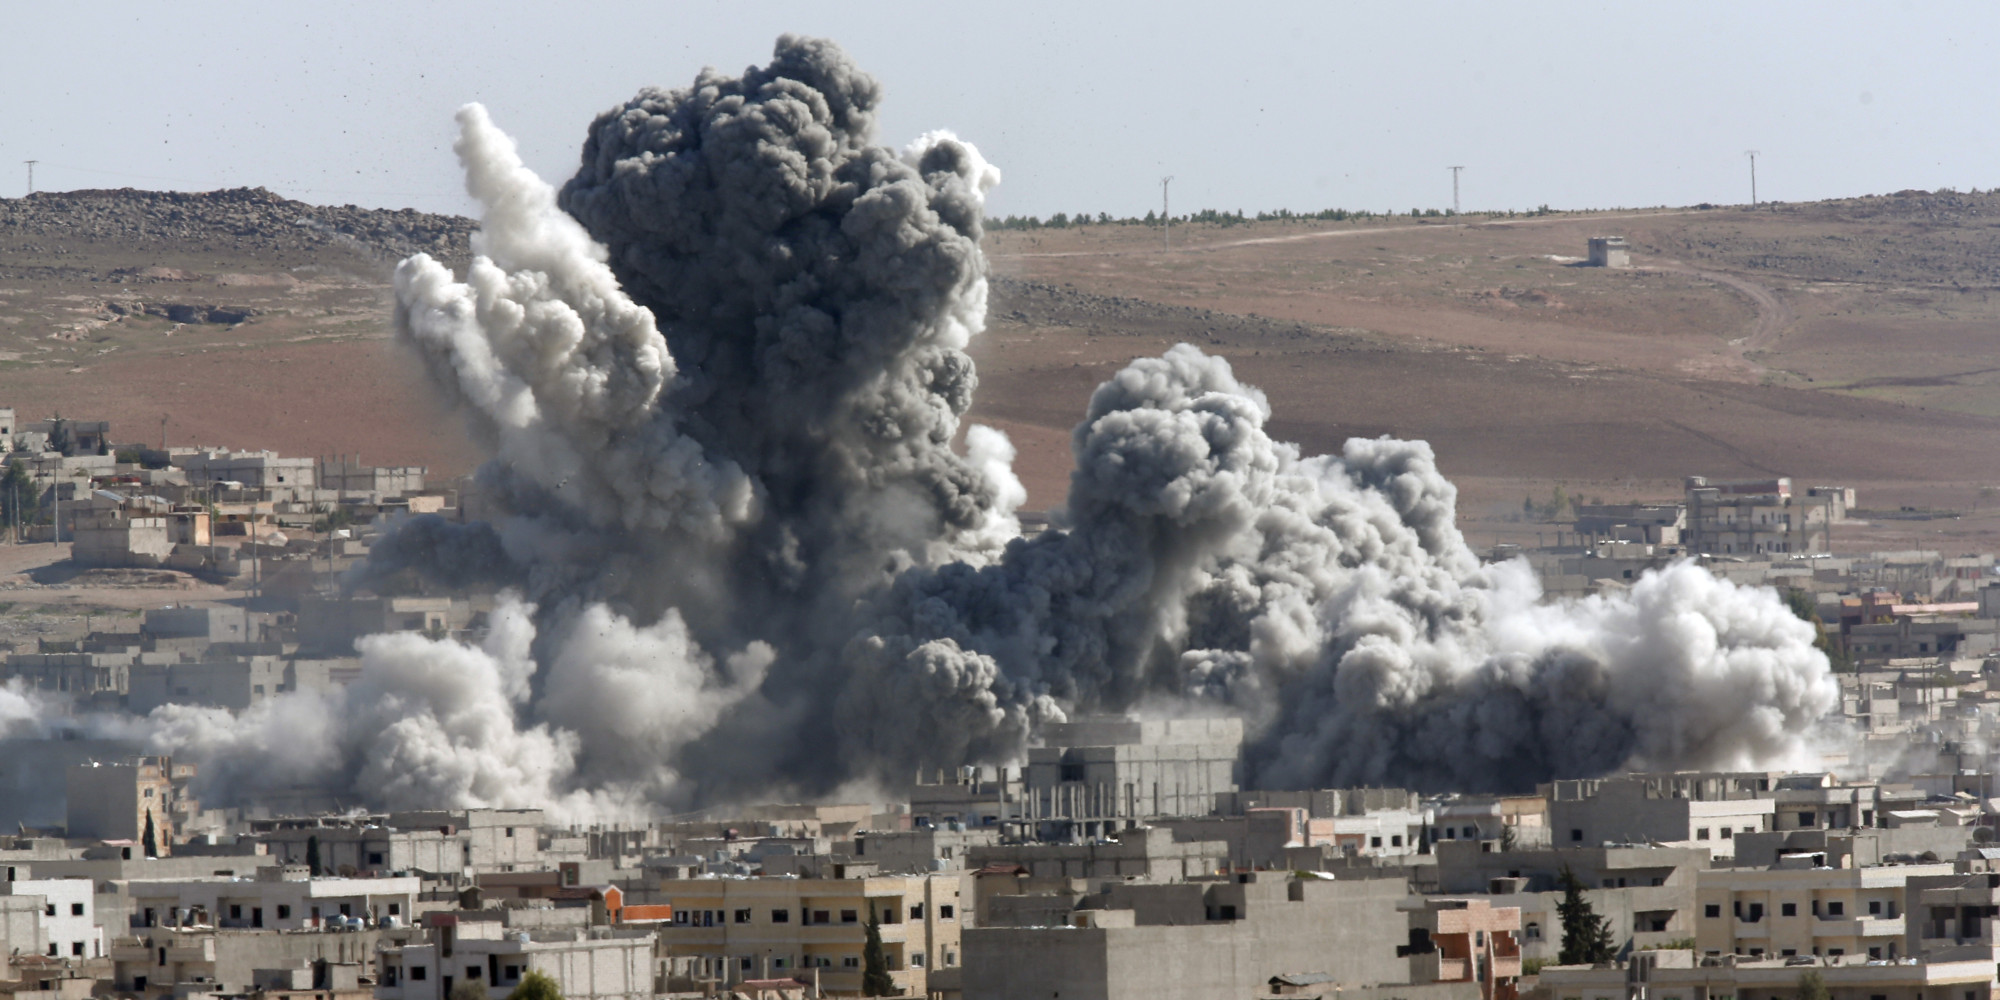 Russia seeks fight with Israel over airstrikes